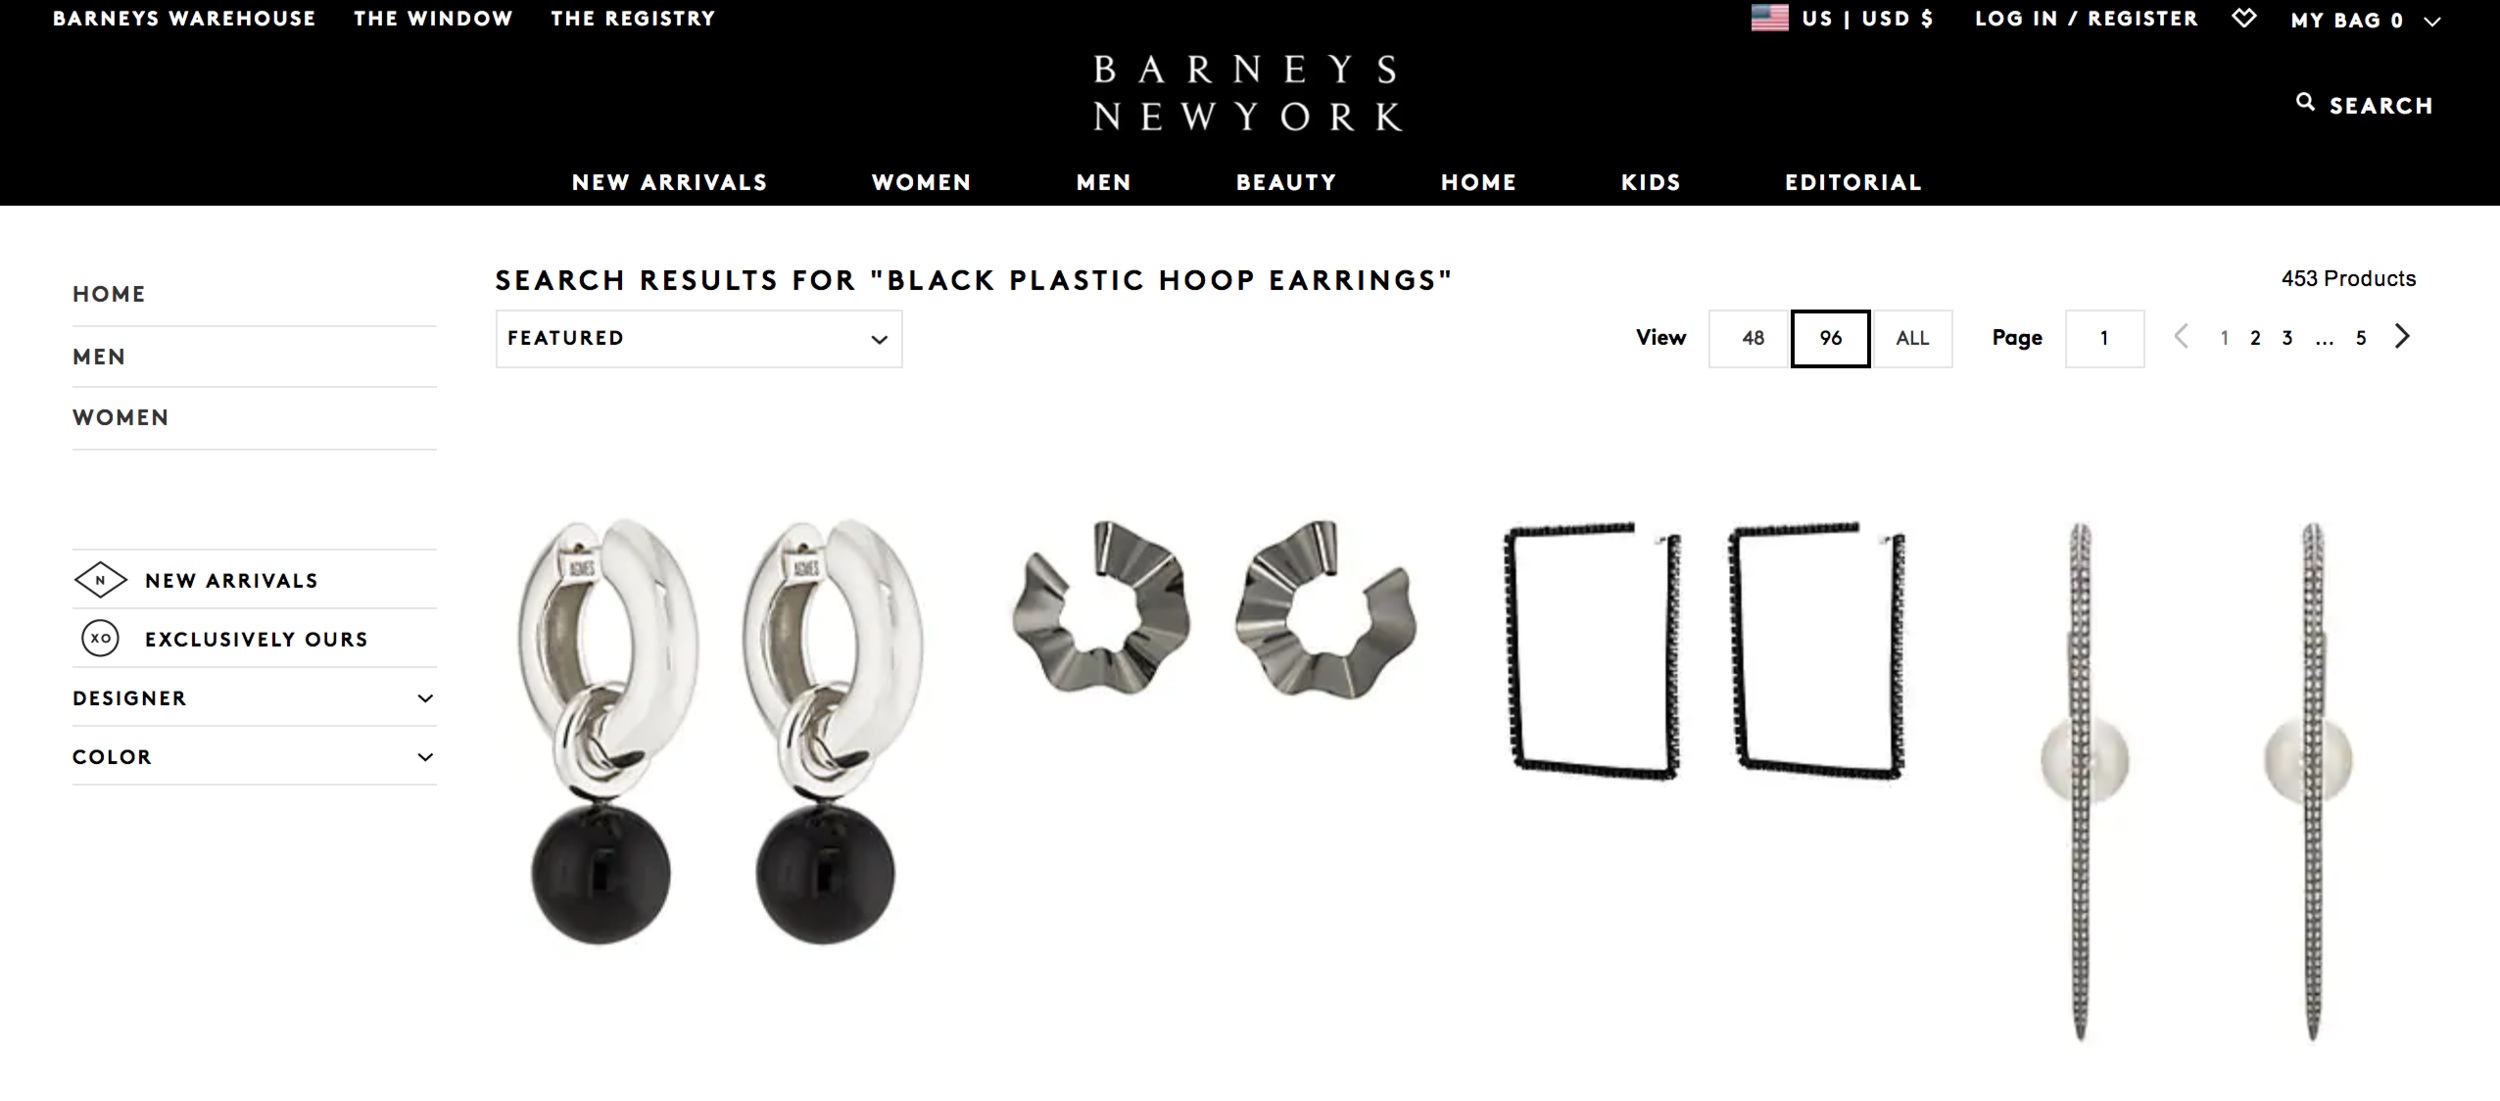 barney's black hoop earrings search results